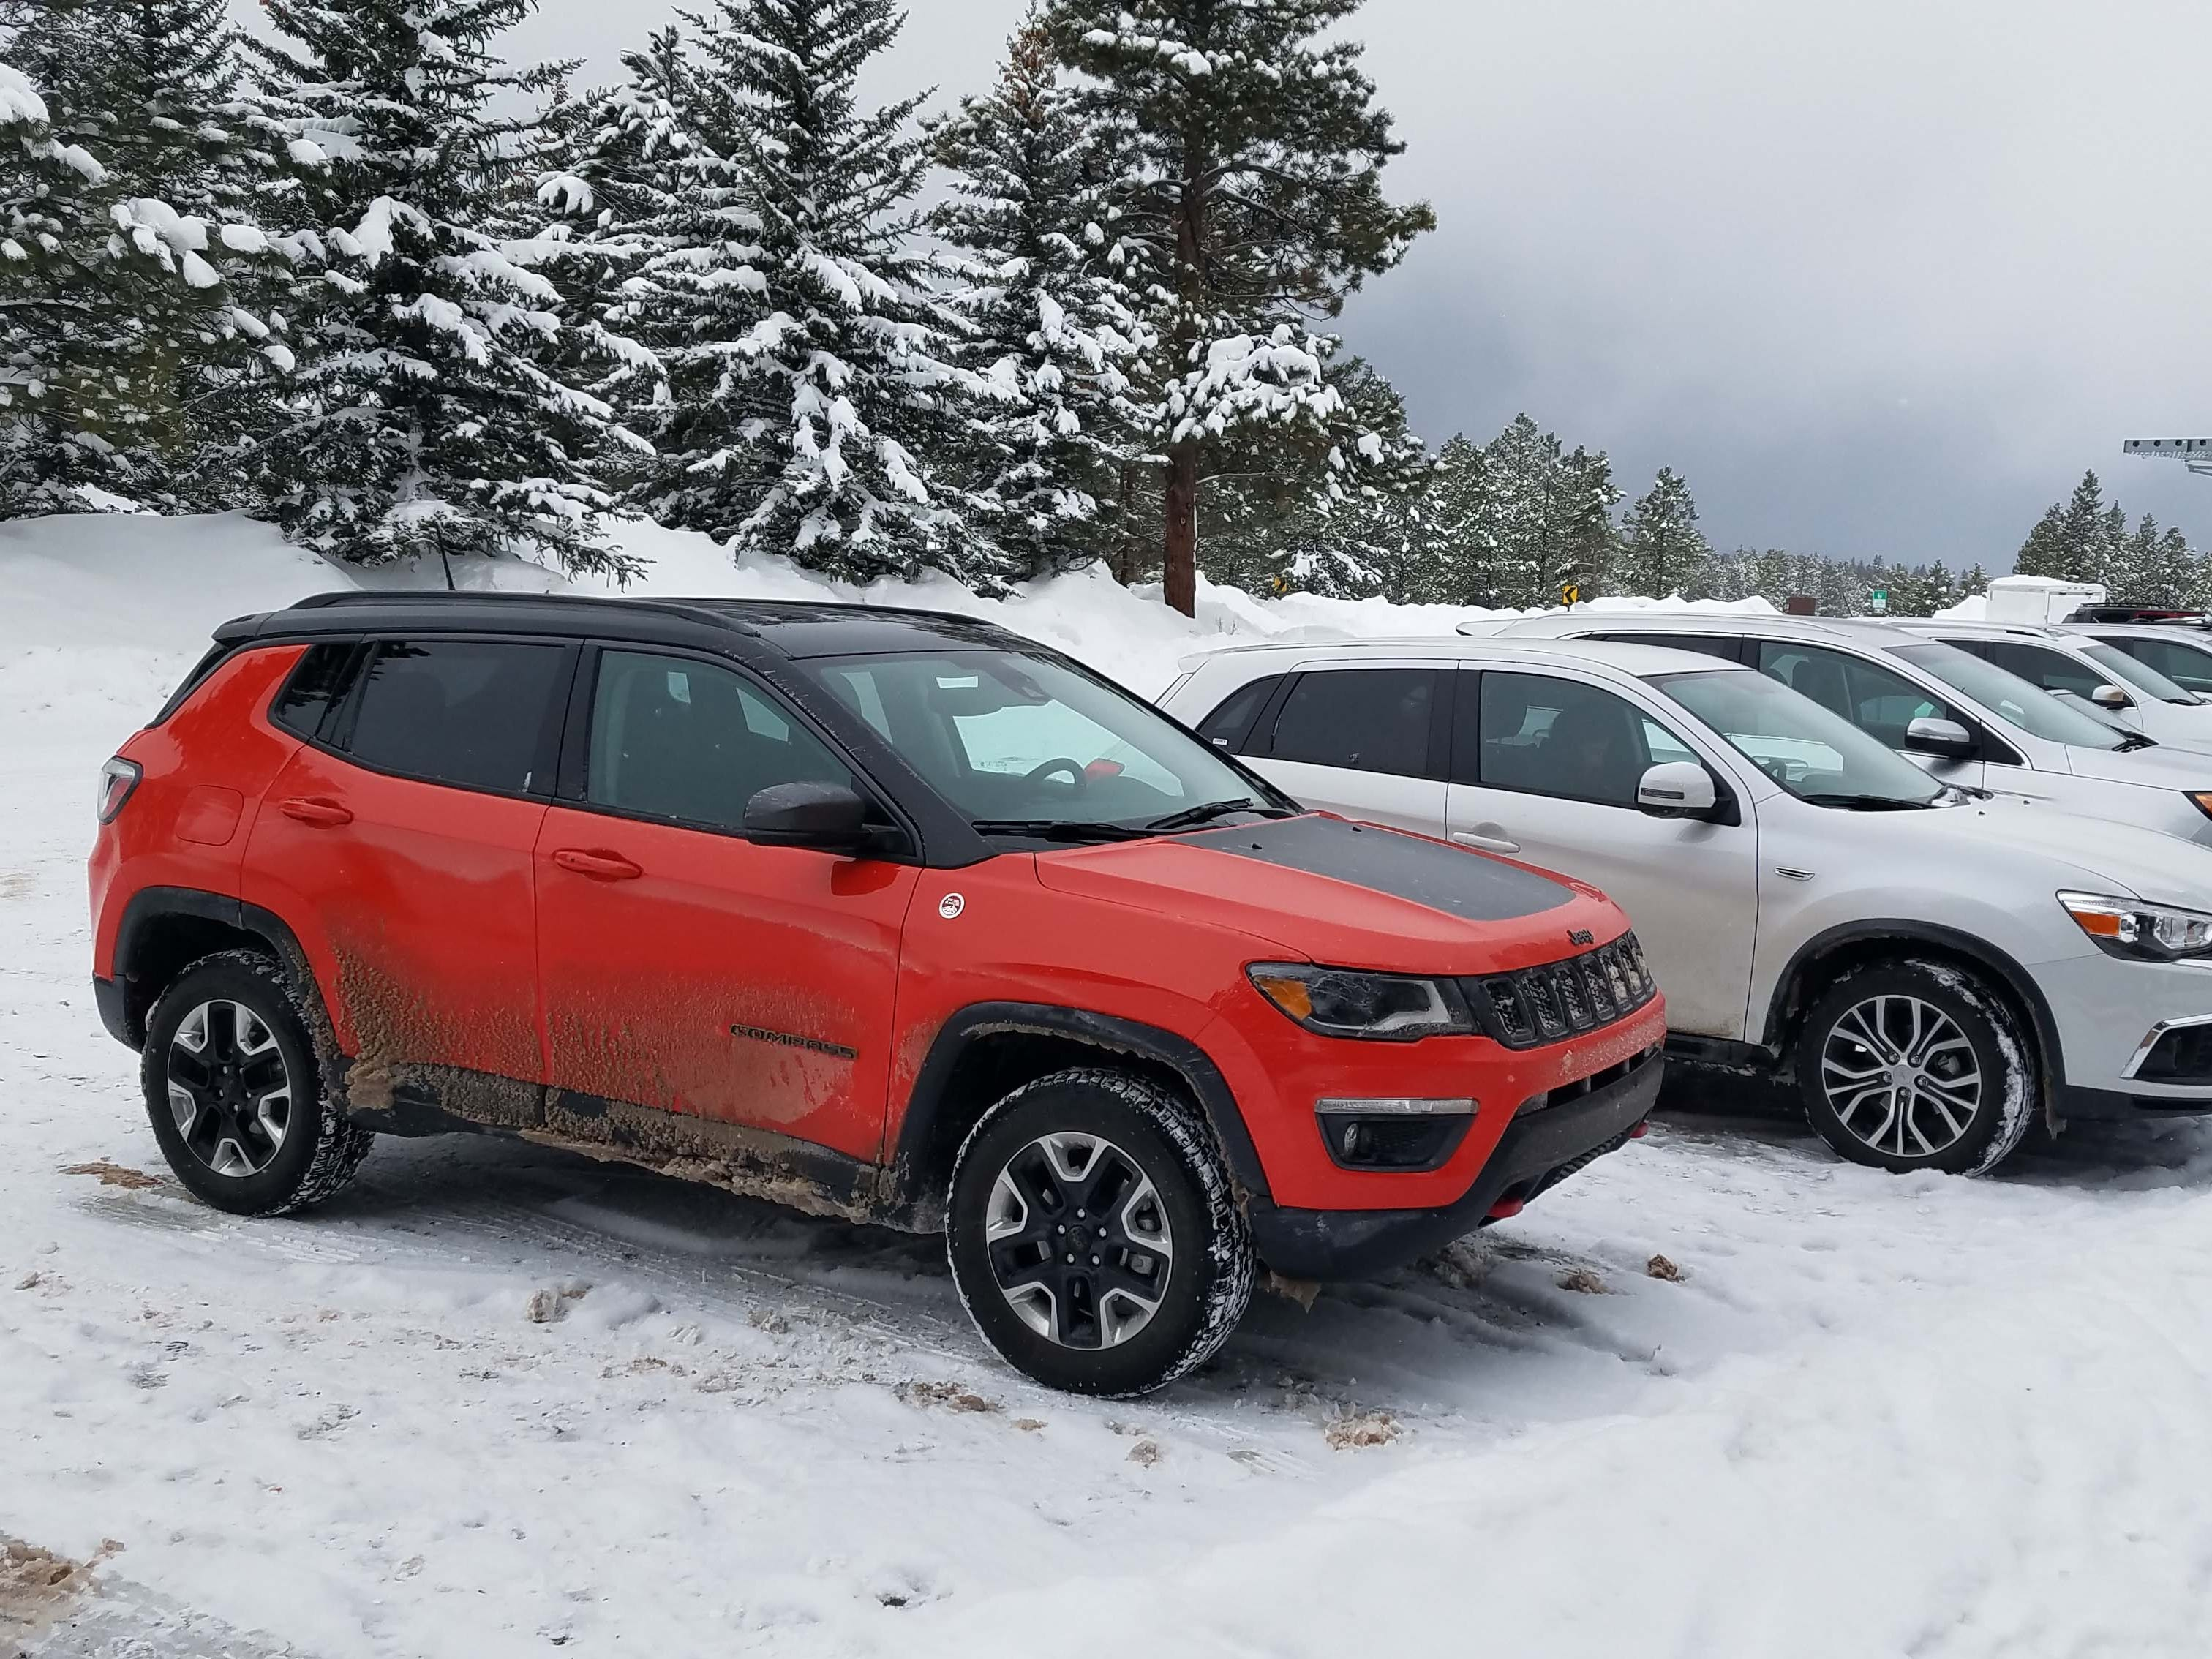 The cure for the common ute. The Jeep Compass Trailhawk stands out in a parking lot of SUVs at Bryce Canyon.